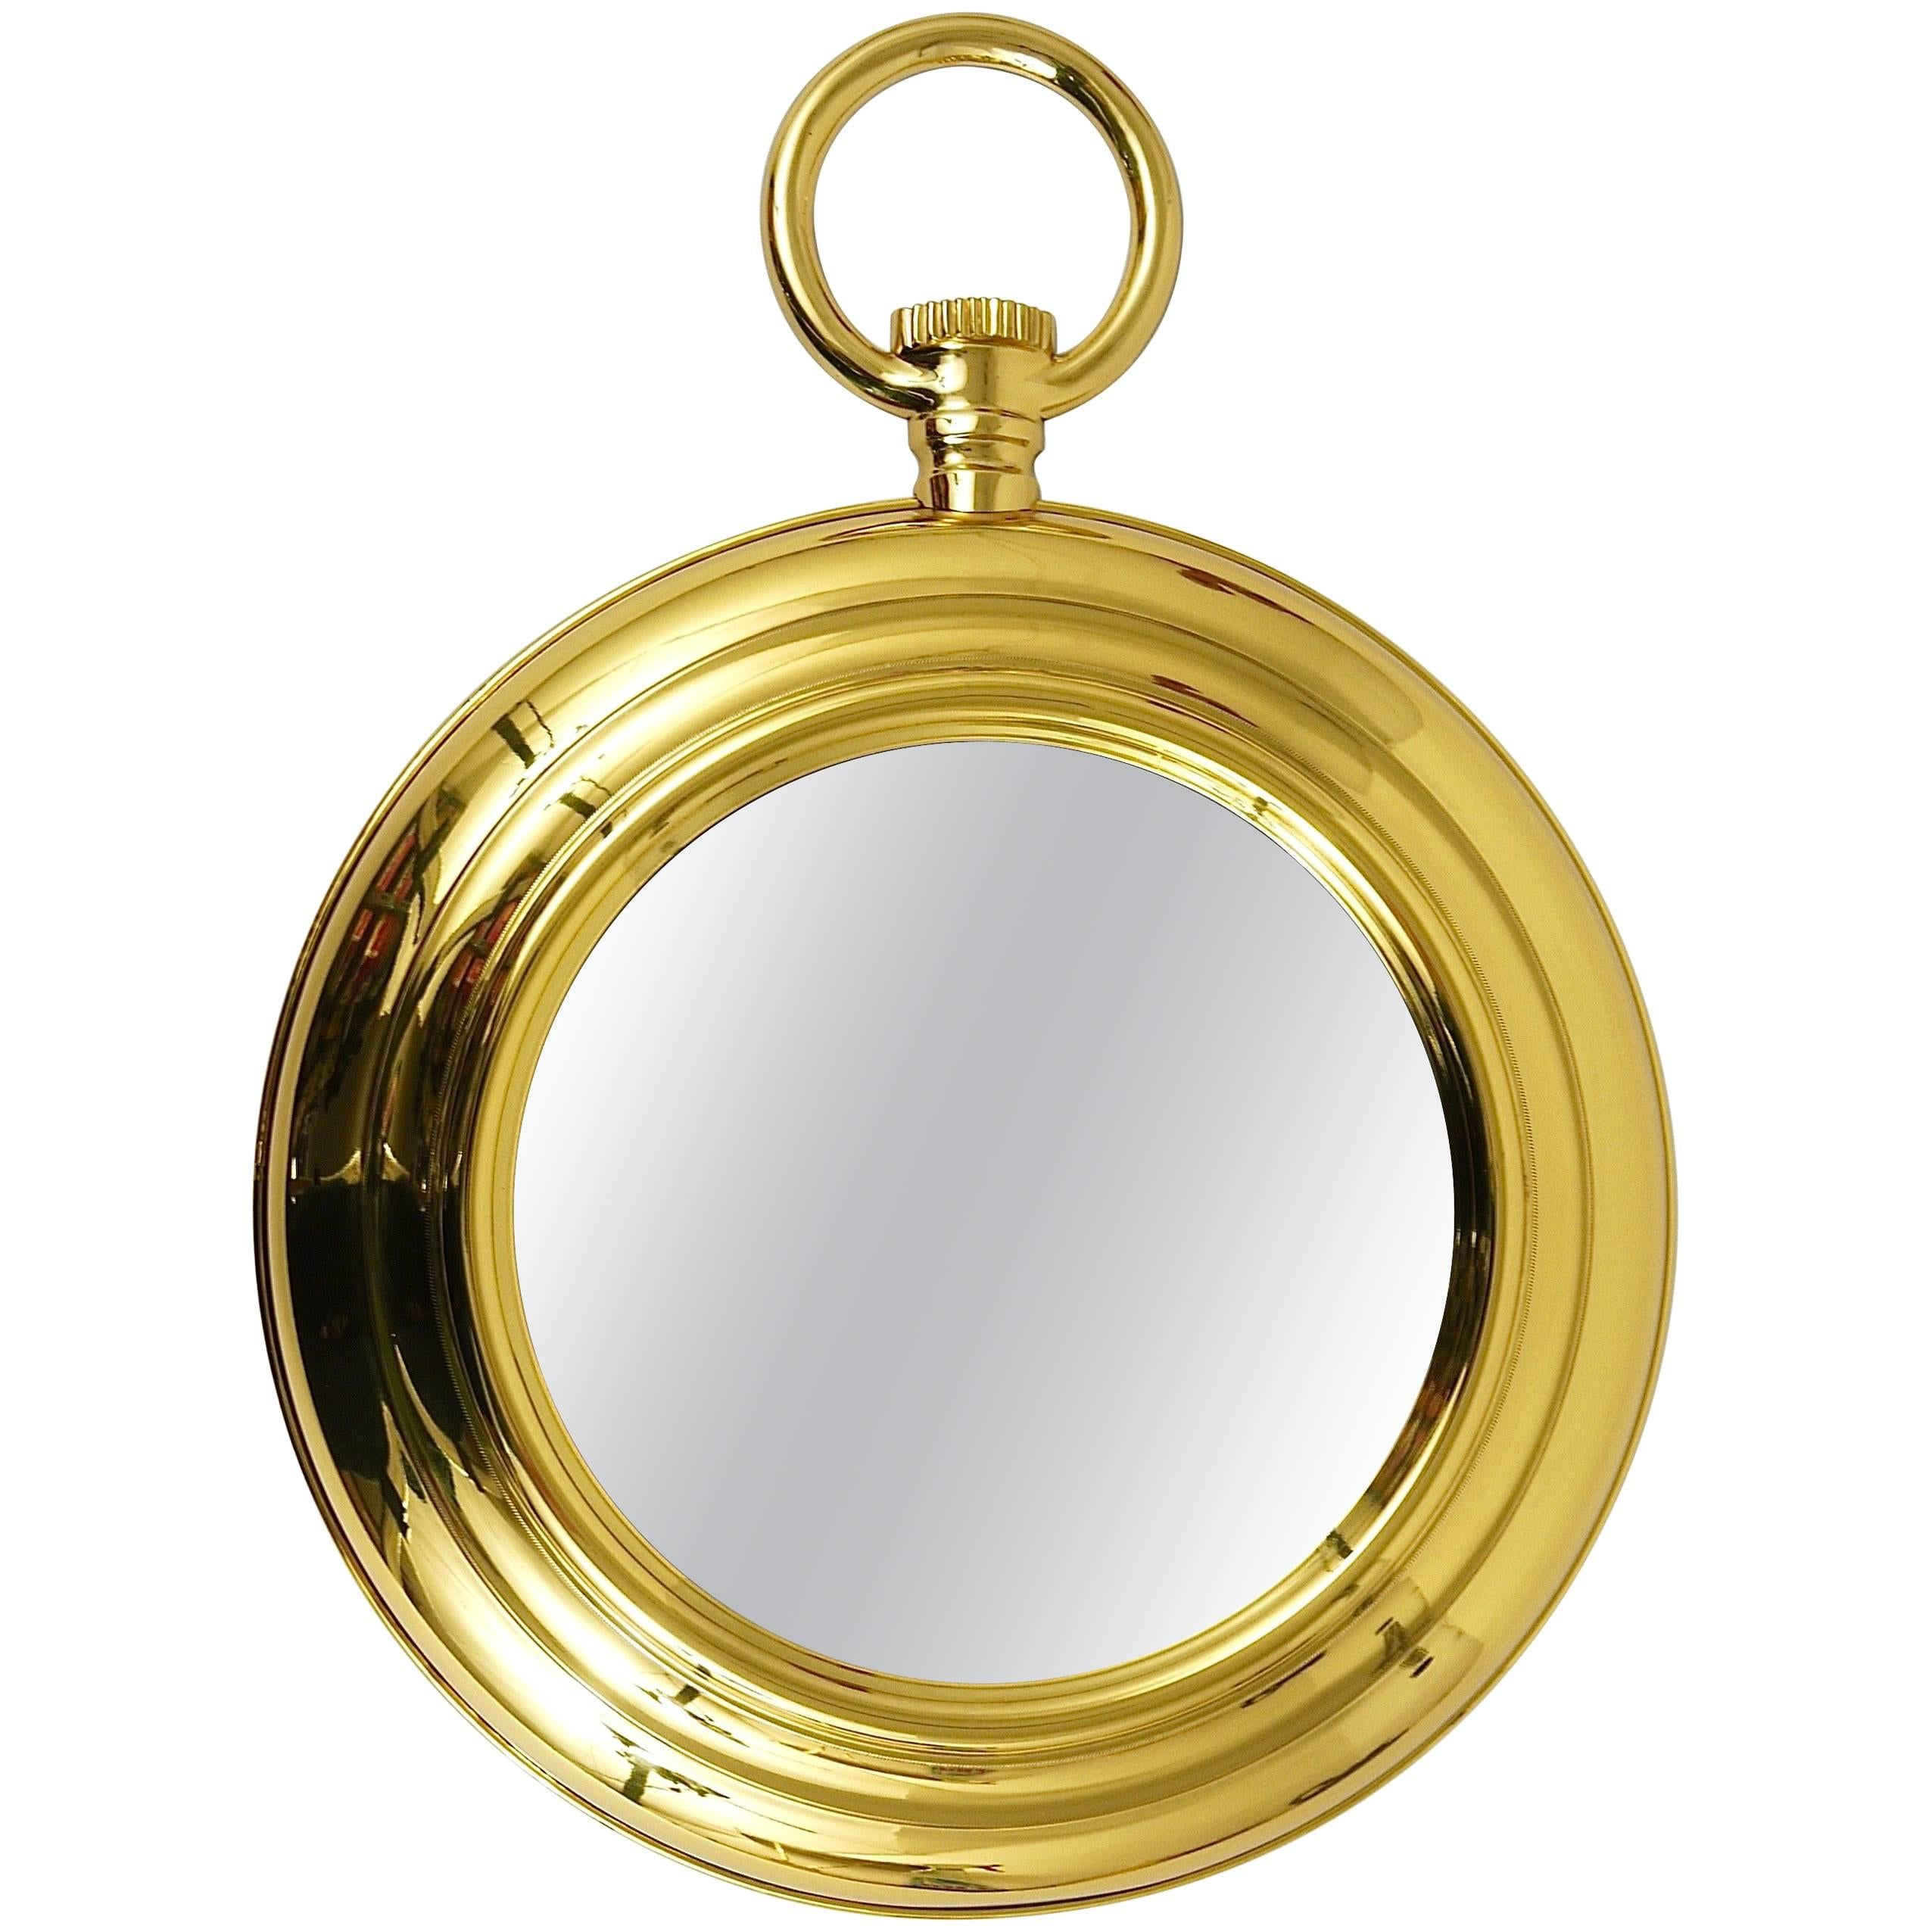 Midcentury Brass Pocket Watch Wall Mirror, Attributed to Piero ...